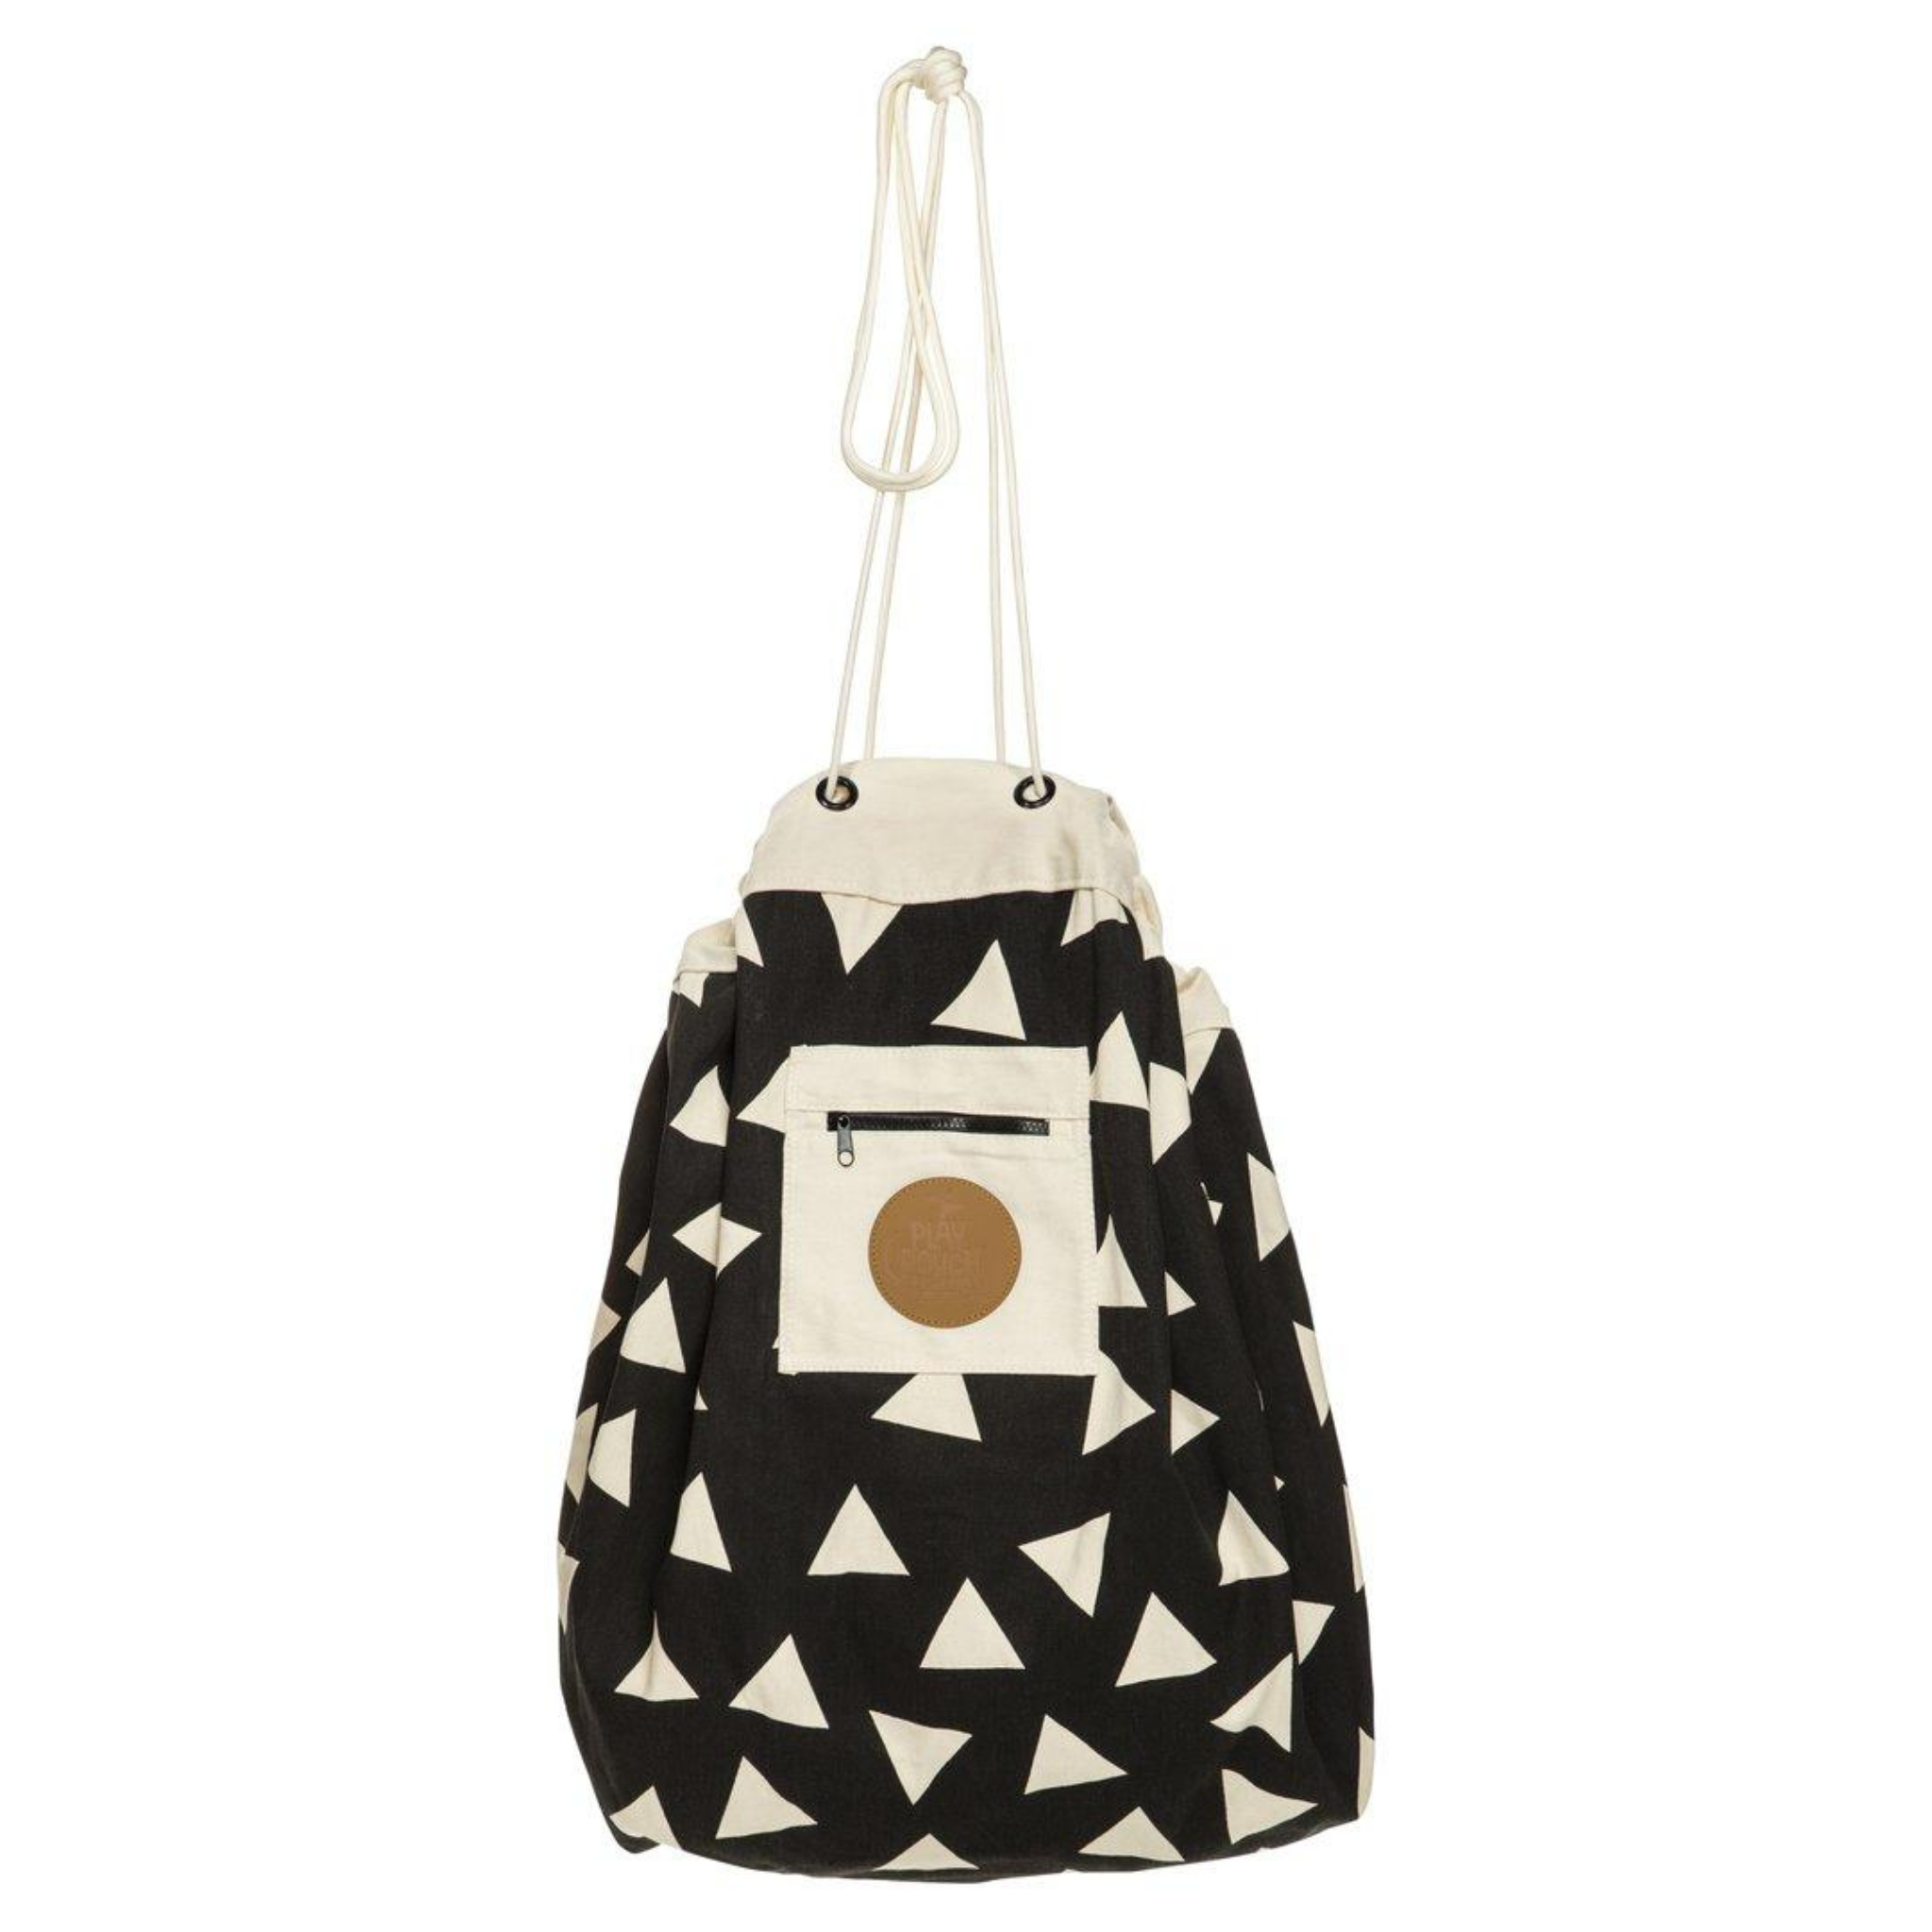 PLAY POUCH - Printed Play Pouch | Triangles